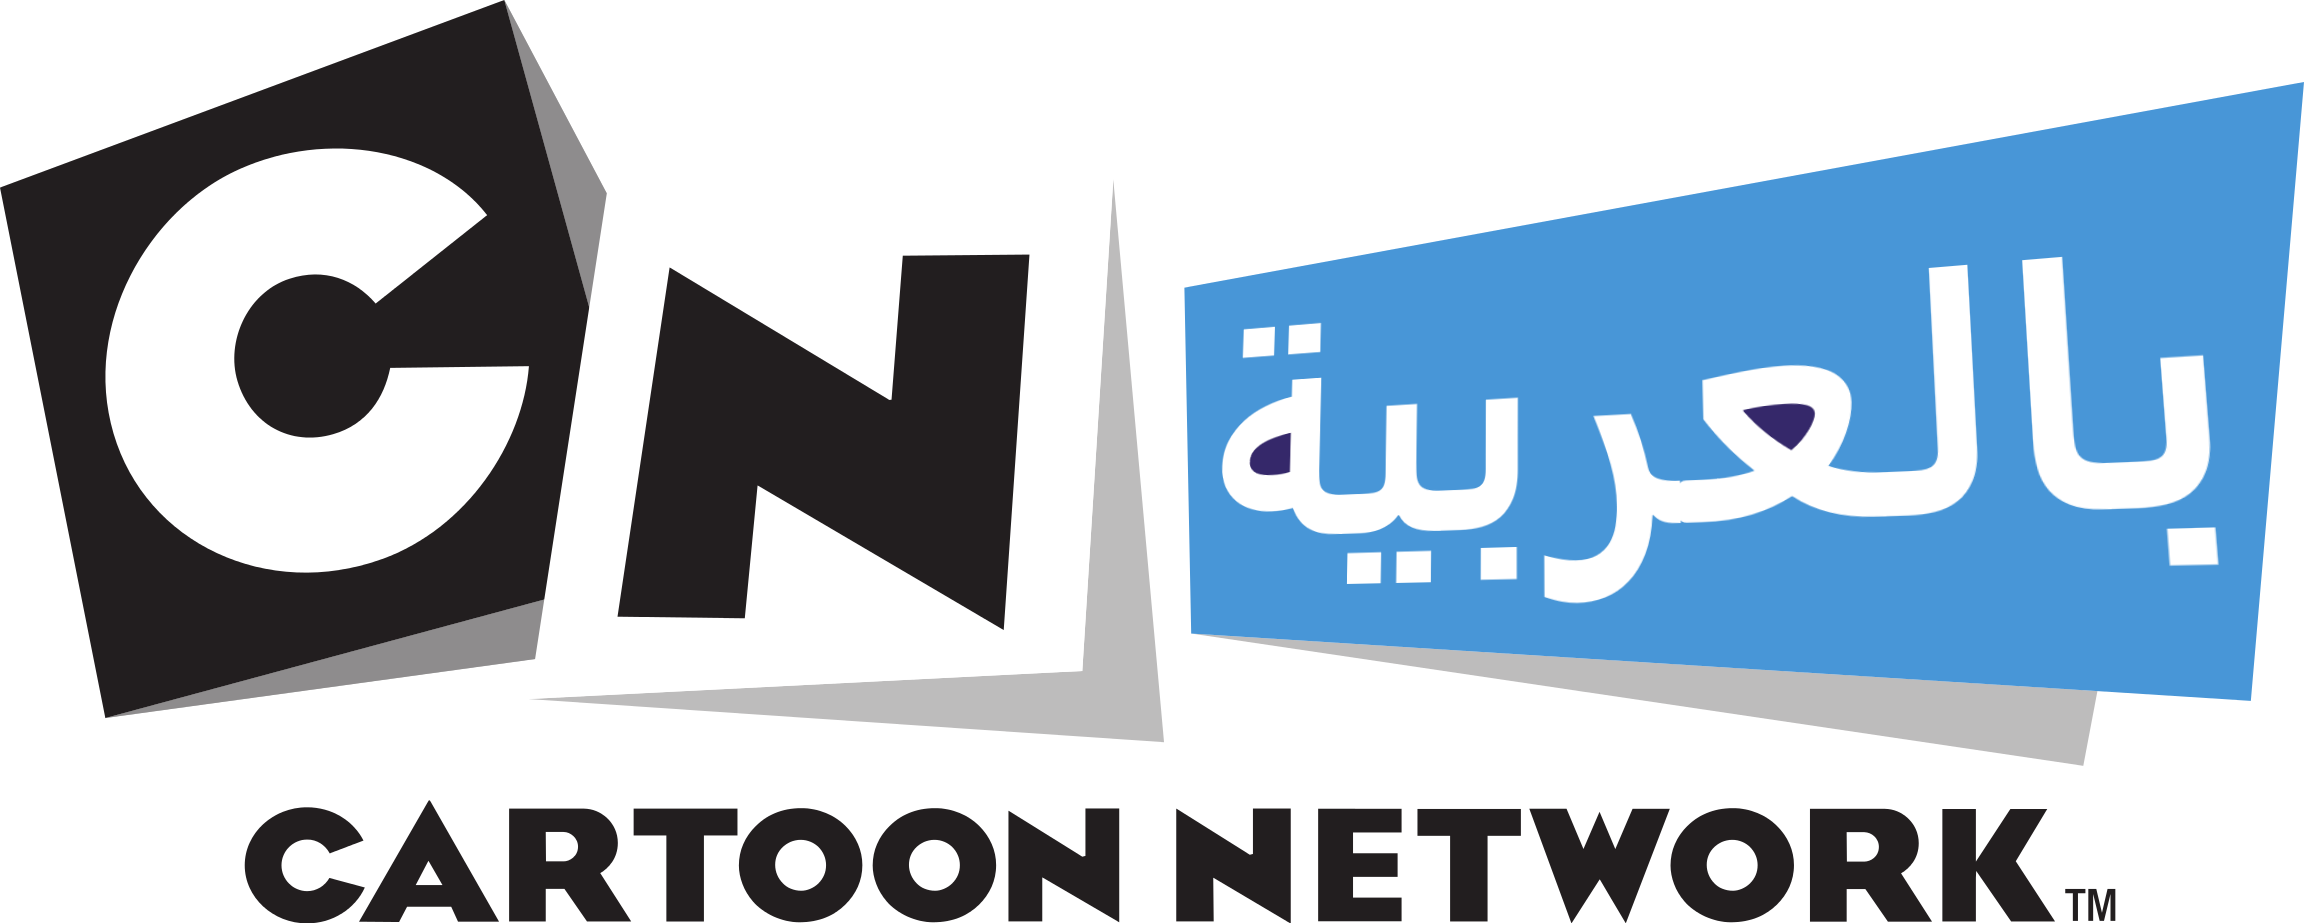 Cartoon Network Arabic Blue Logo Early By Cataarchive On Deviantart